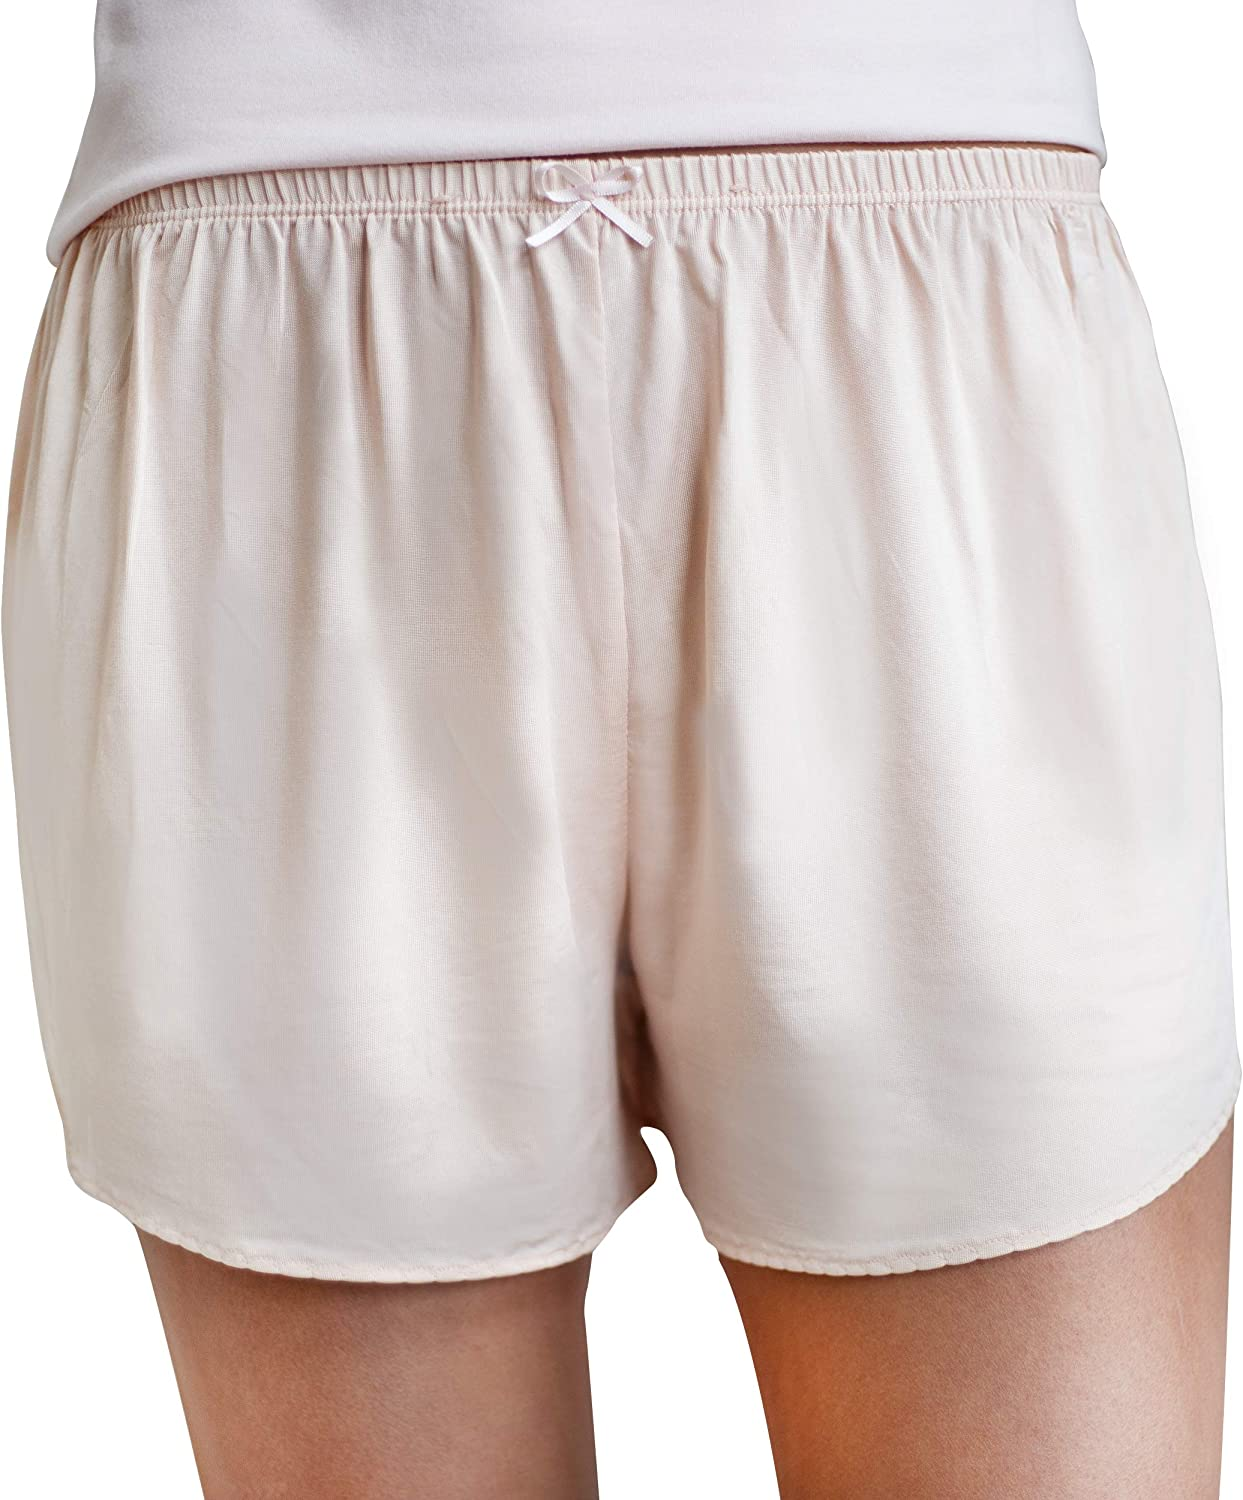 DINOBASSI Pettipants Half Slips For Bloomers Women All stores are sold - Las Vegas Mall Comfortable